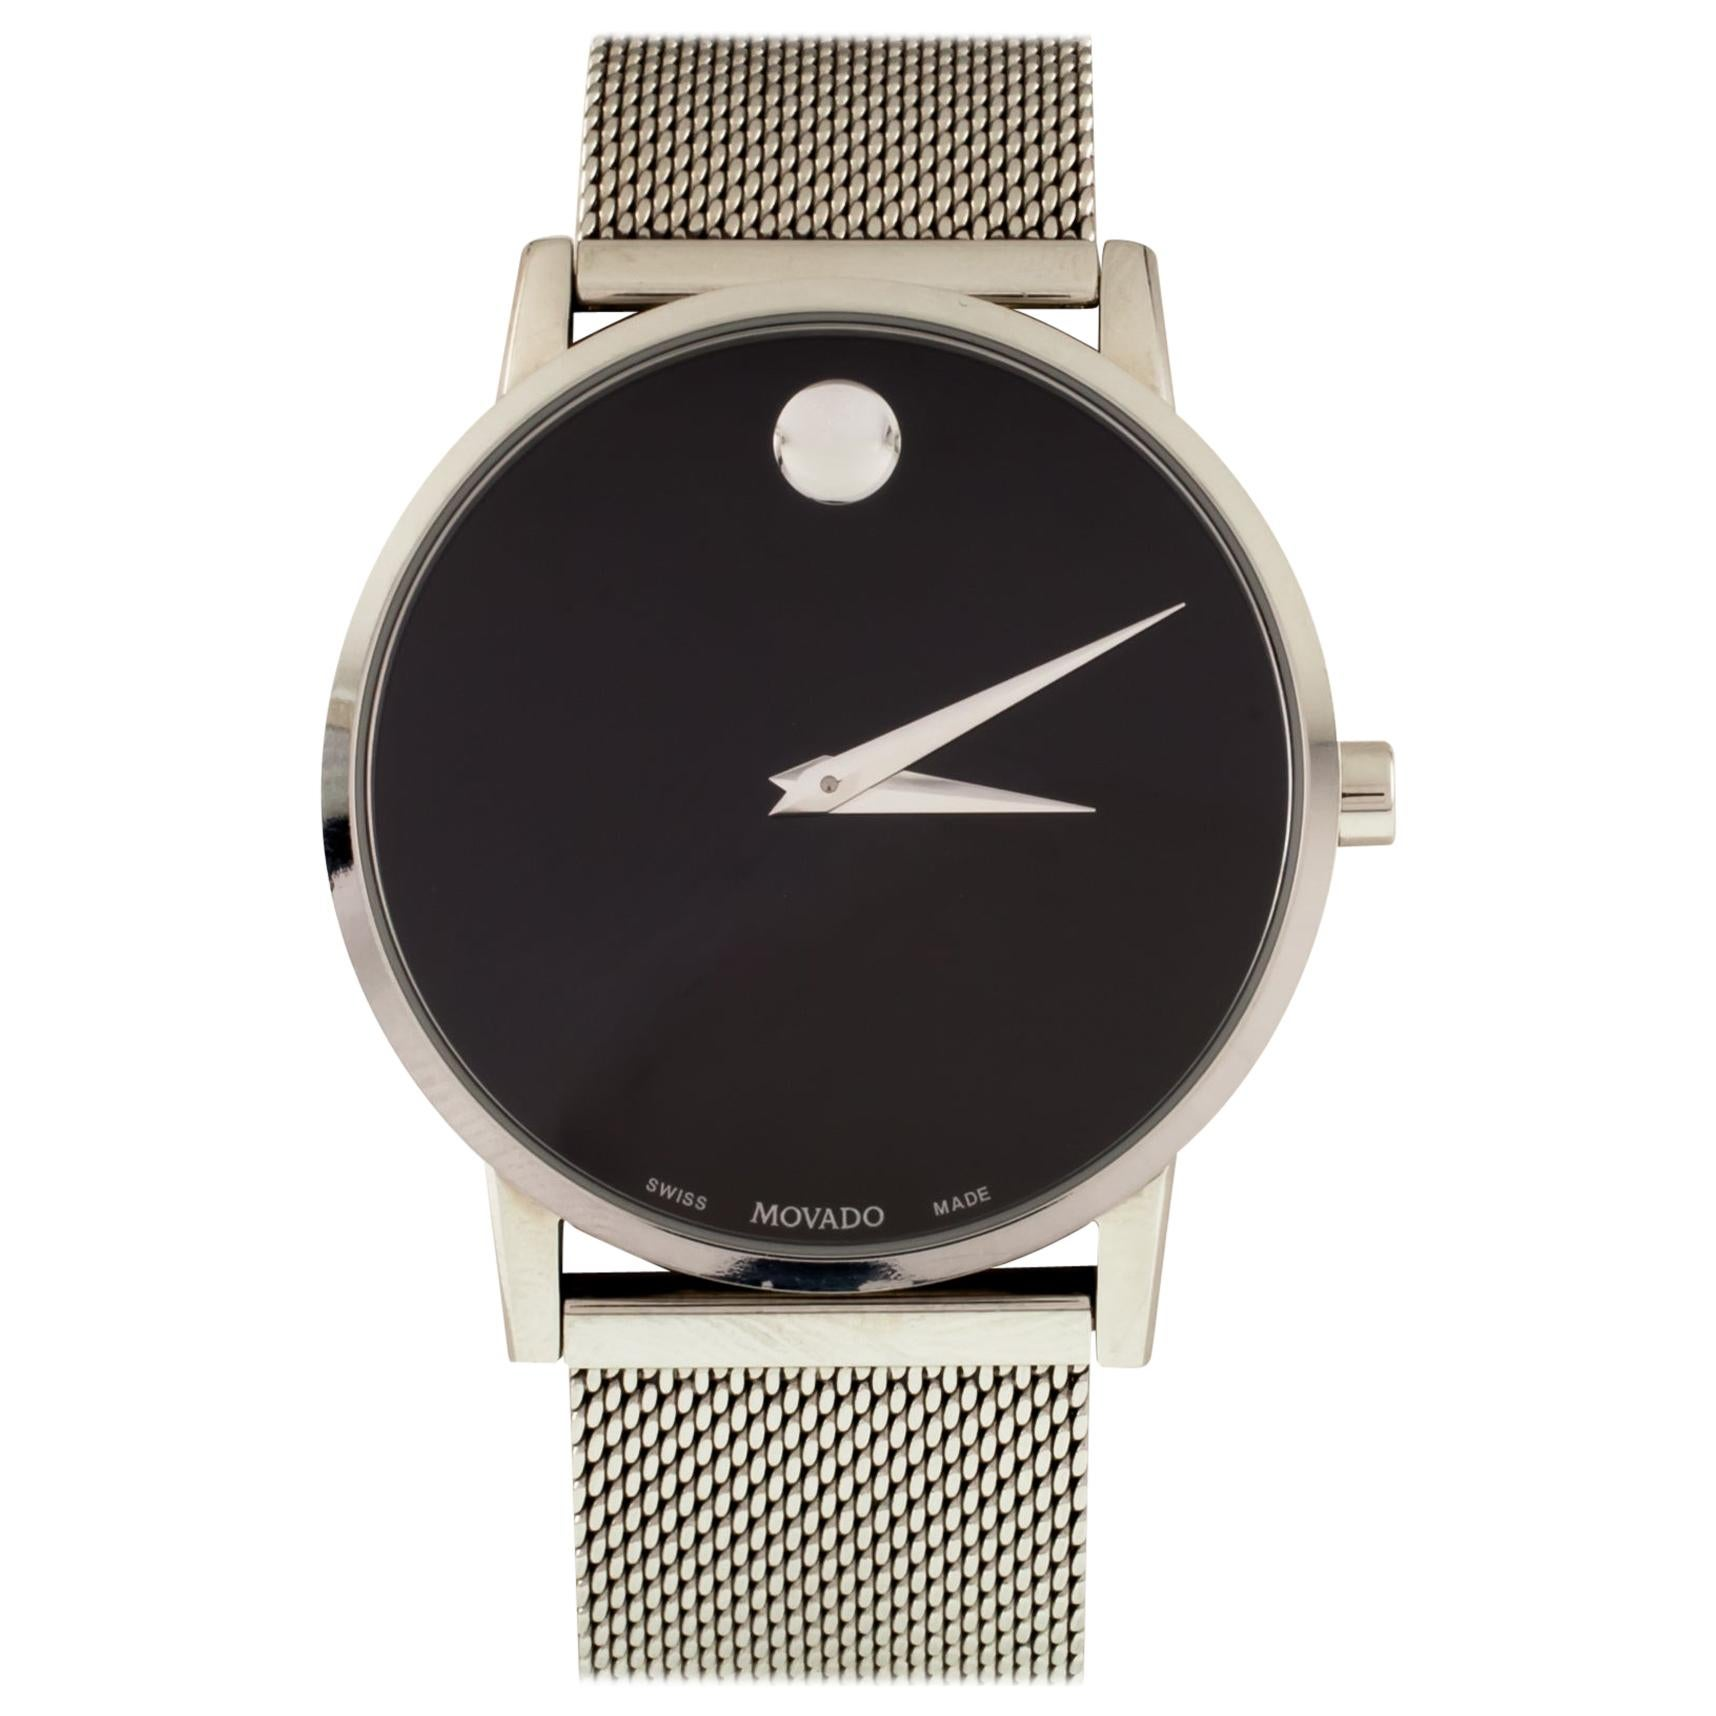 Movado Men's Quartz Steel Watch with Mesh Band 0607219 with Box and Papers